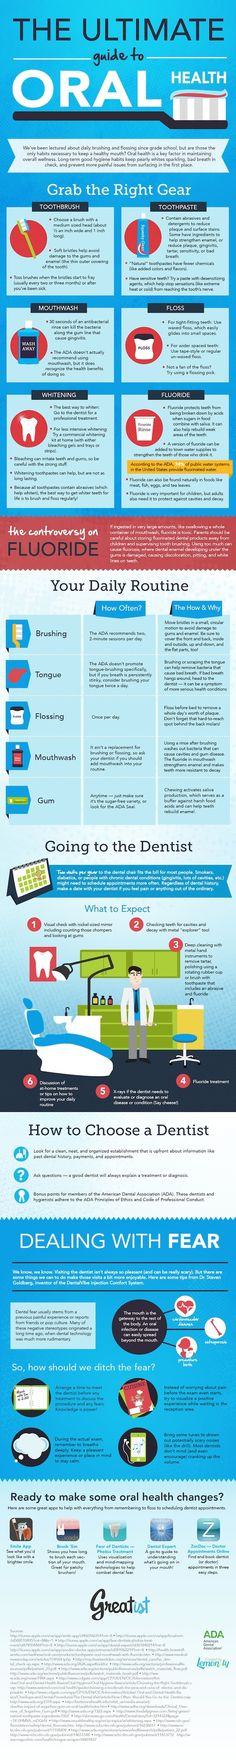 Ultimate guide to oral health